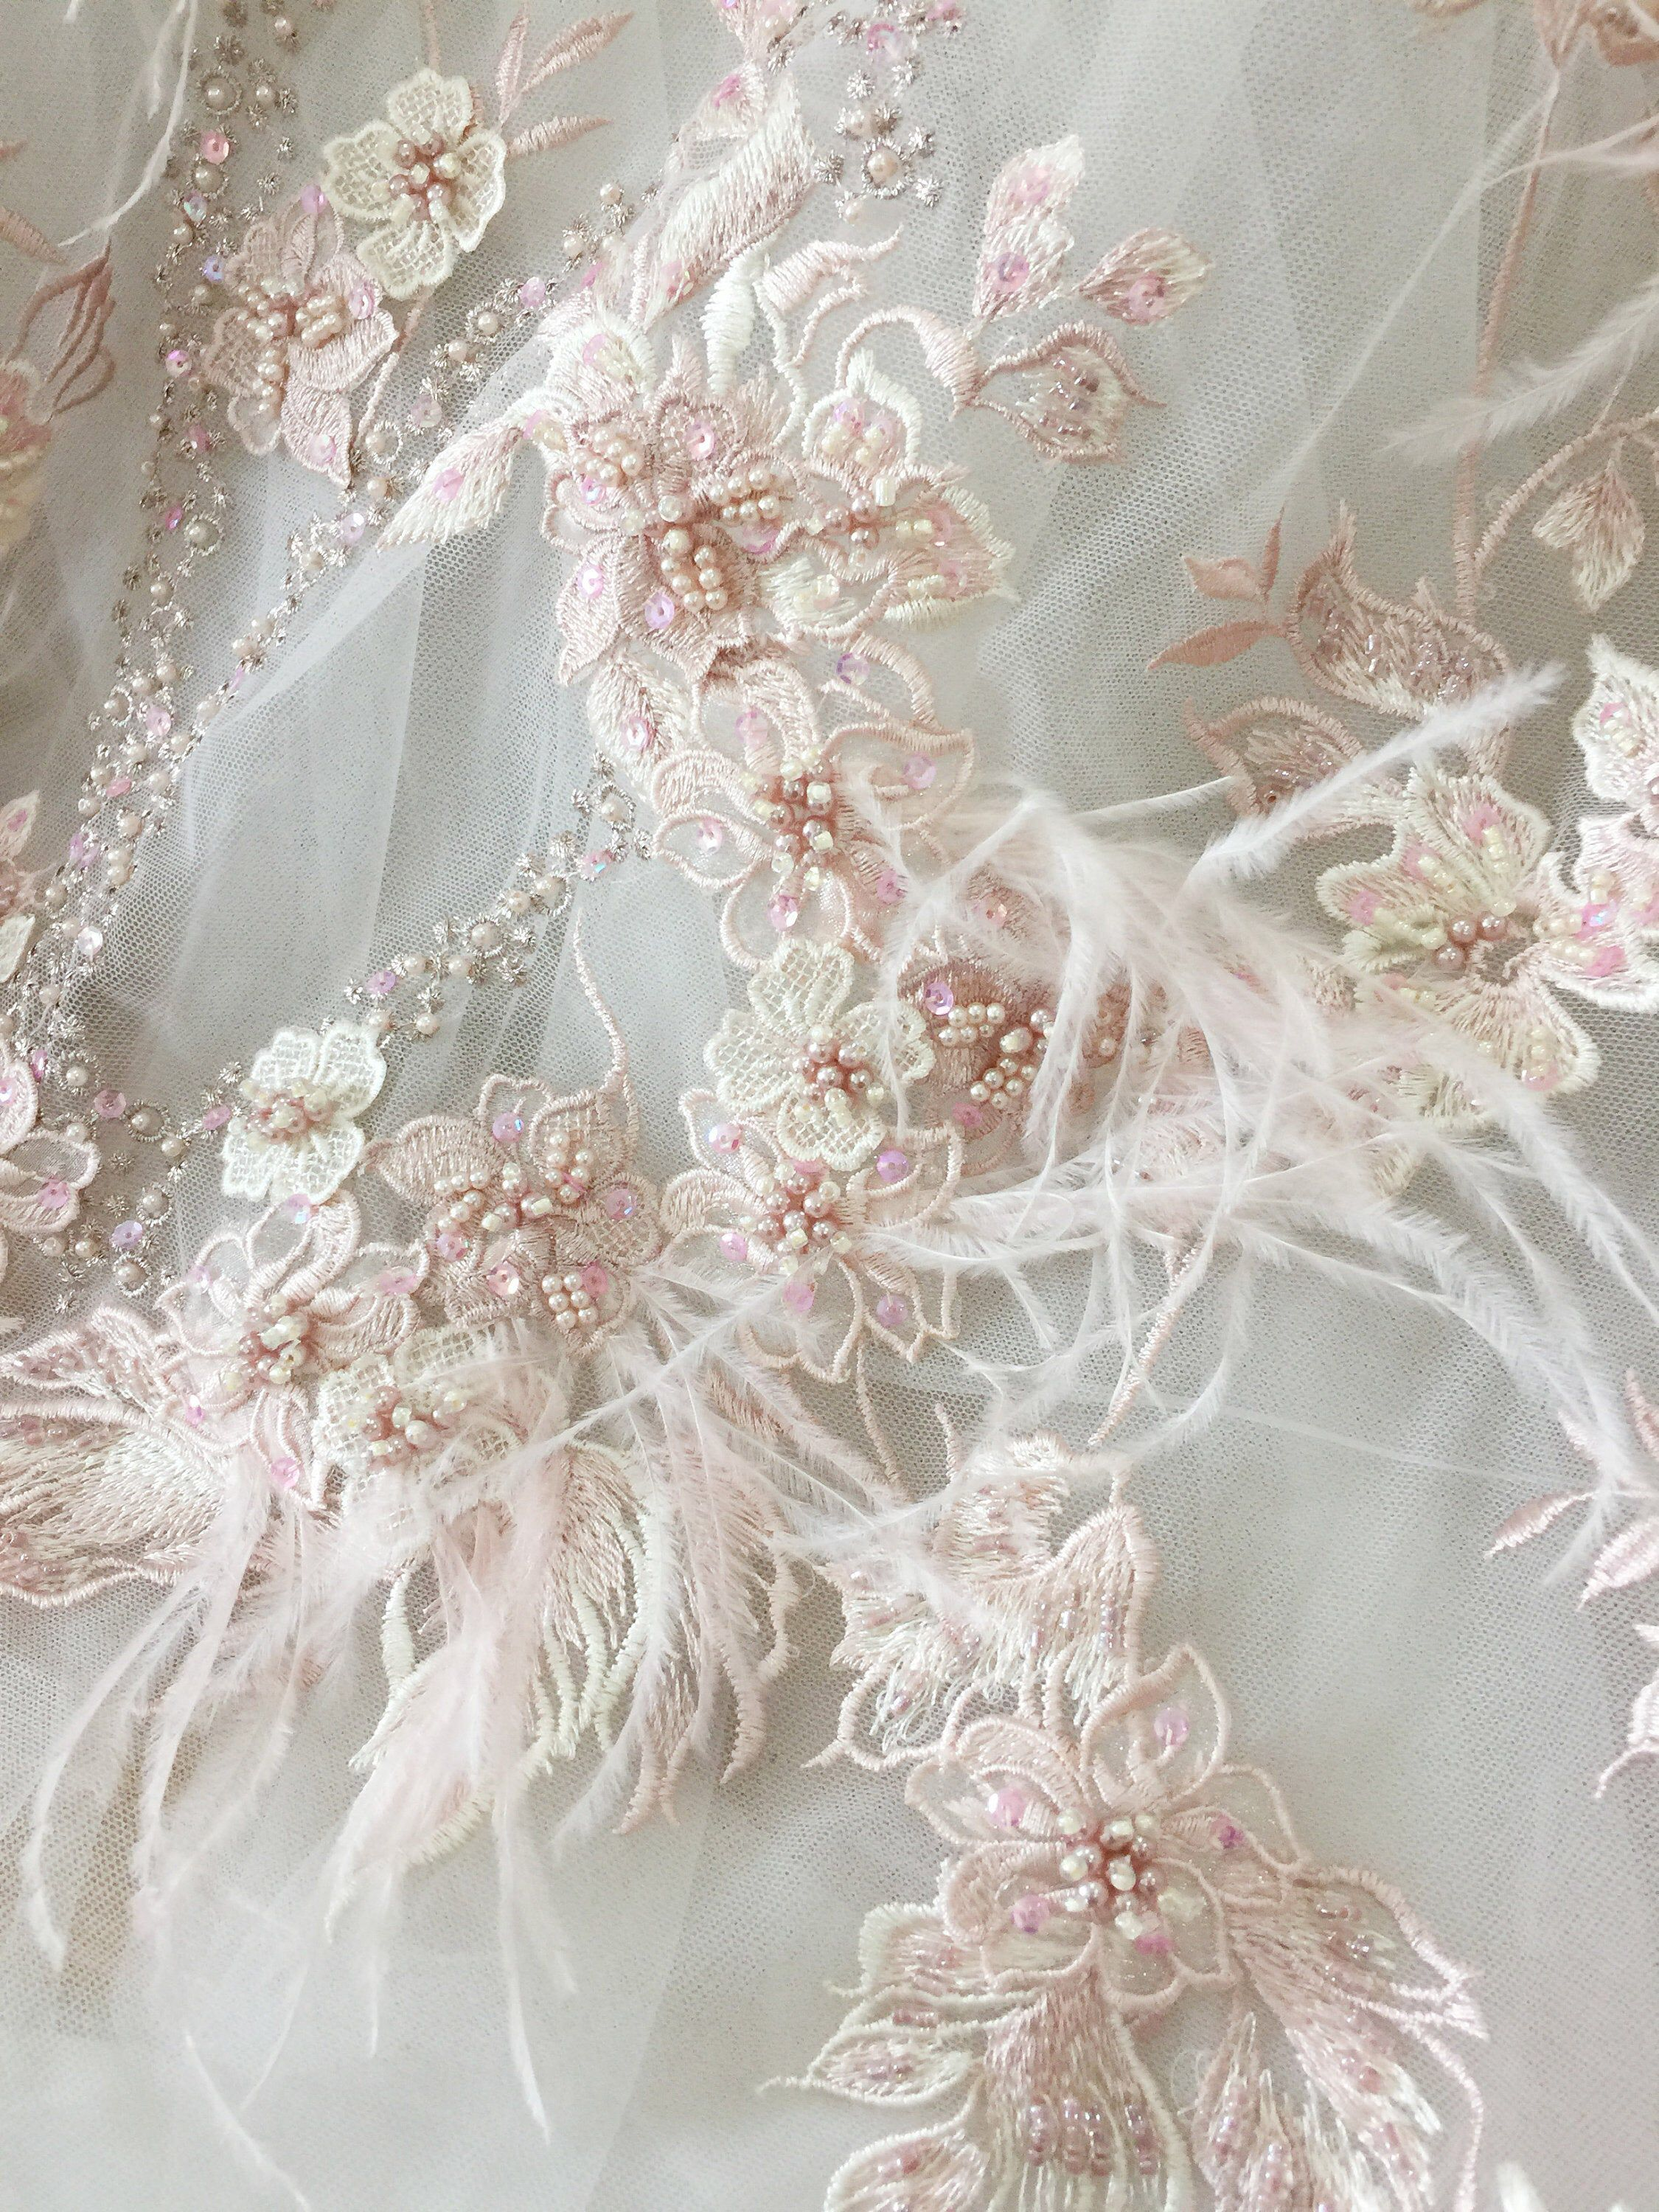 Excited To Share The Latest Addition To My Etsy Shop Luxury 3d Beaded Applique Fabric Wi Haute Couture Fabric Bridal Dress Fabric Wedding Dress With Feathers